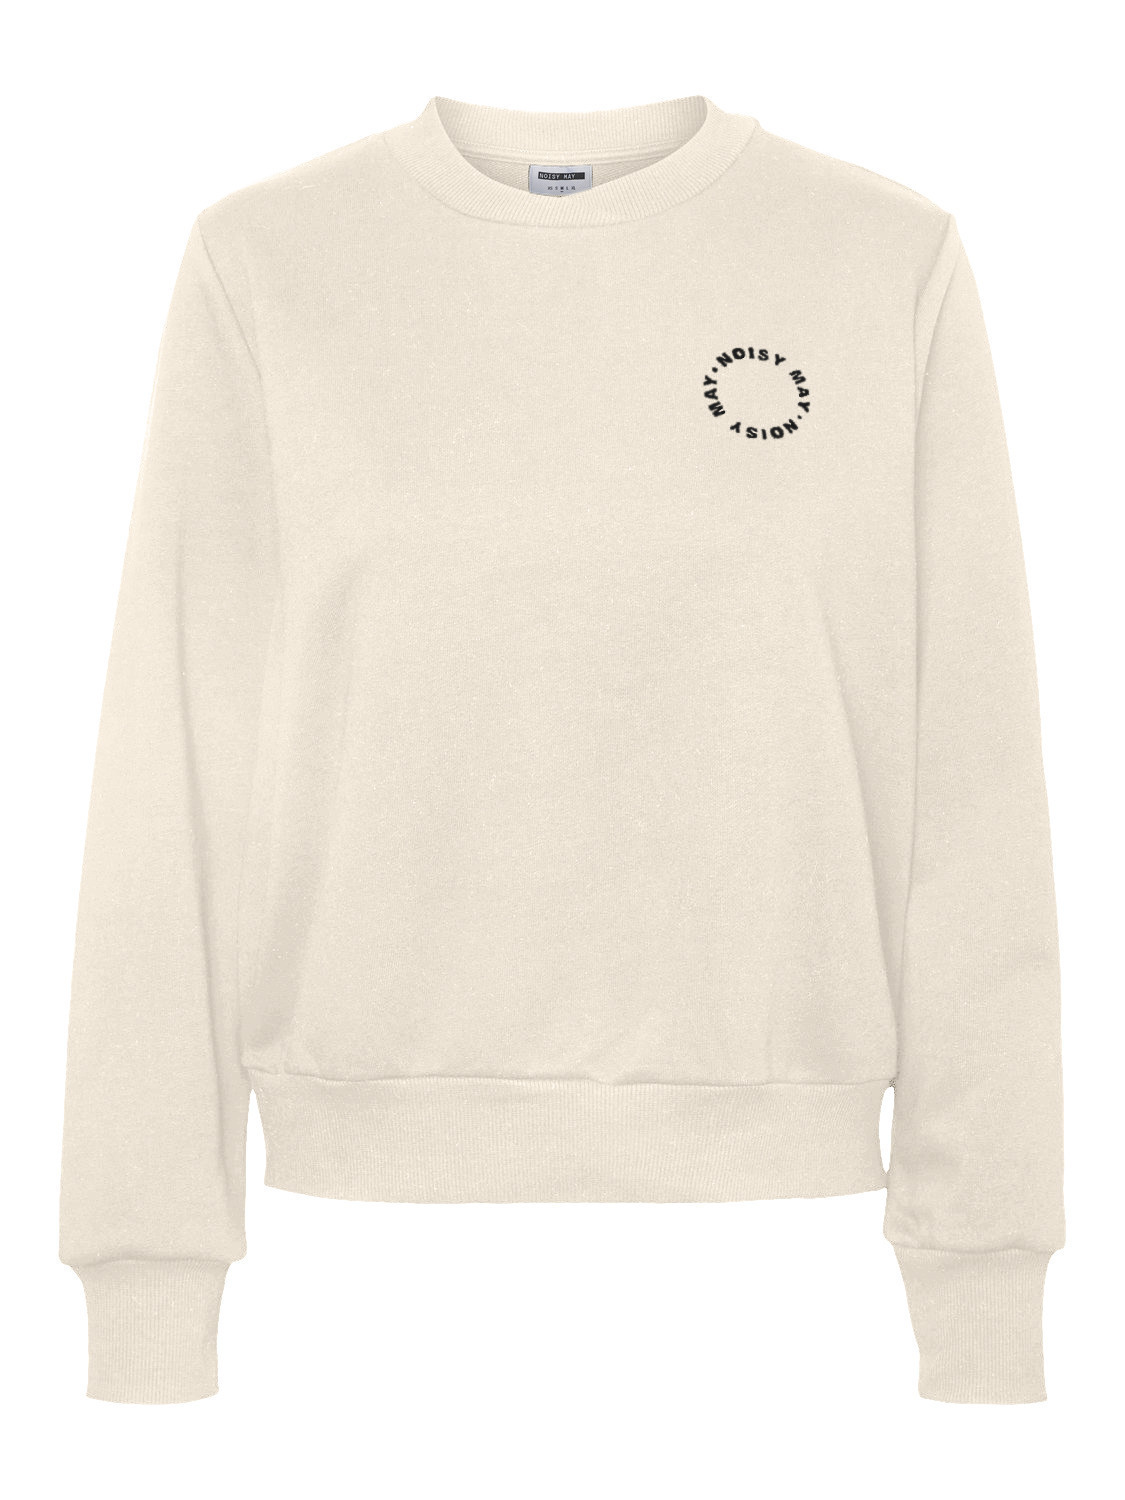 Lupa genser Noisy May – Noisy May off white genser Lupa – Mio Trend